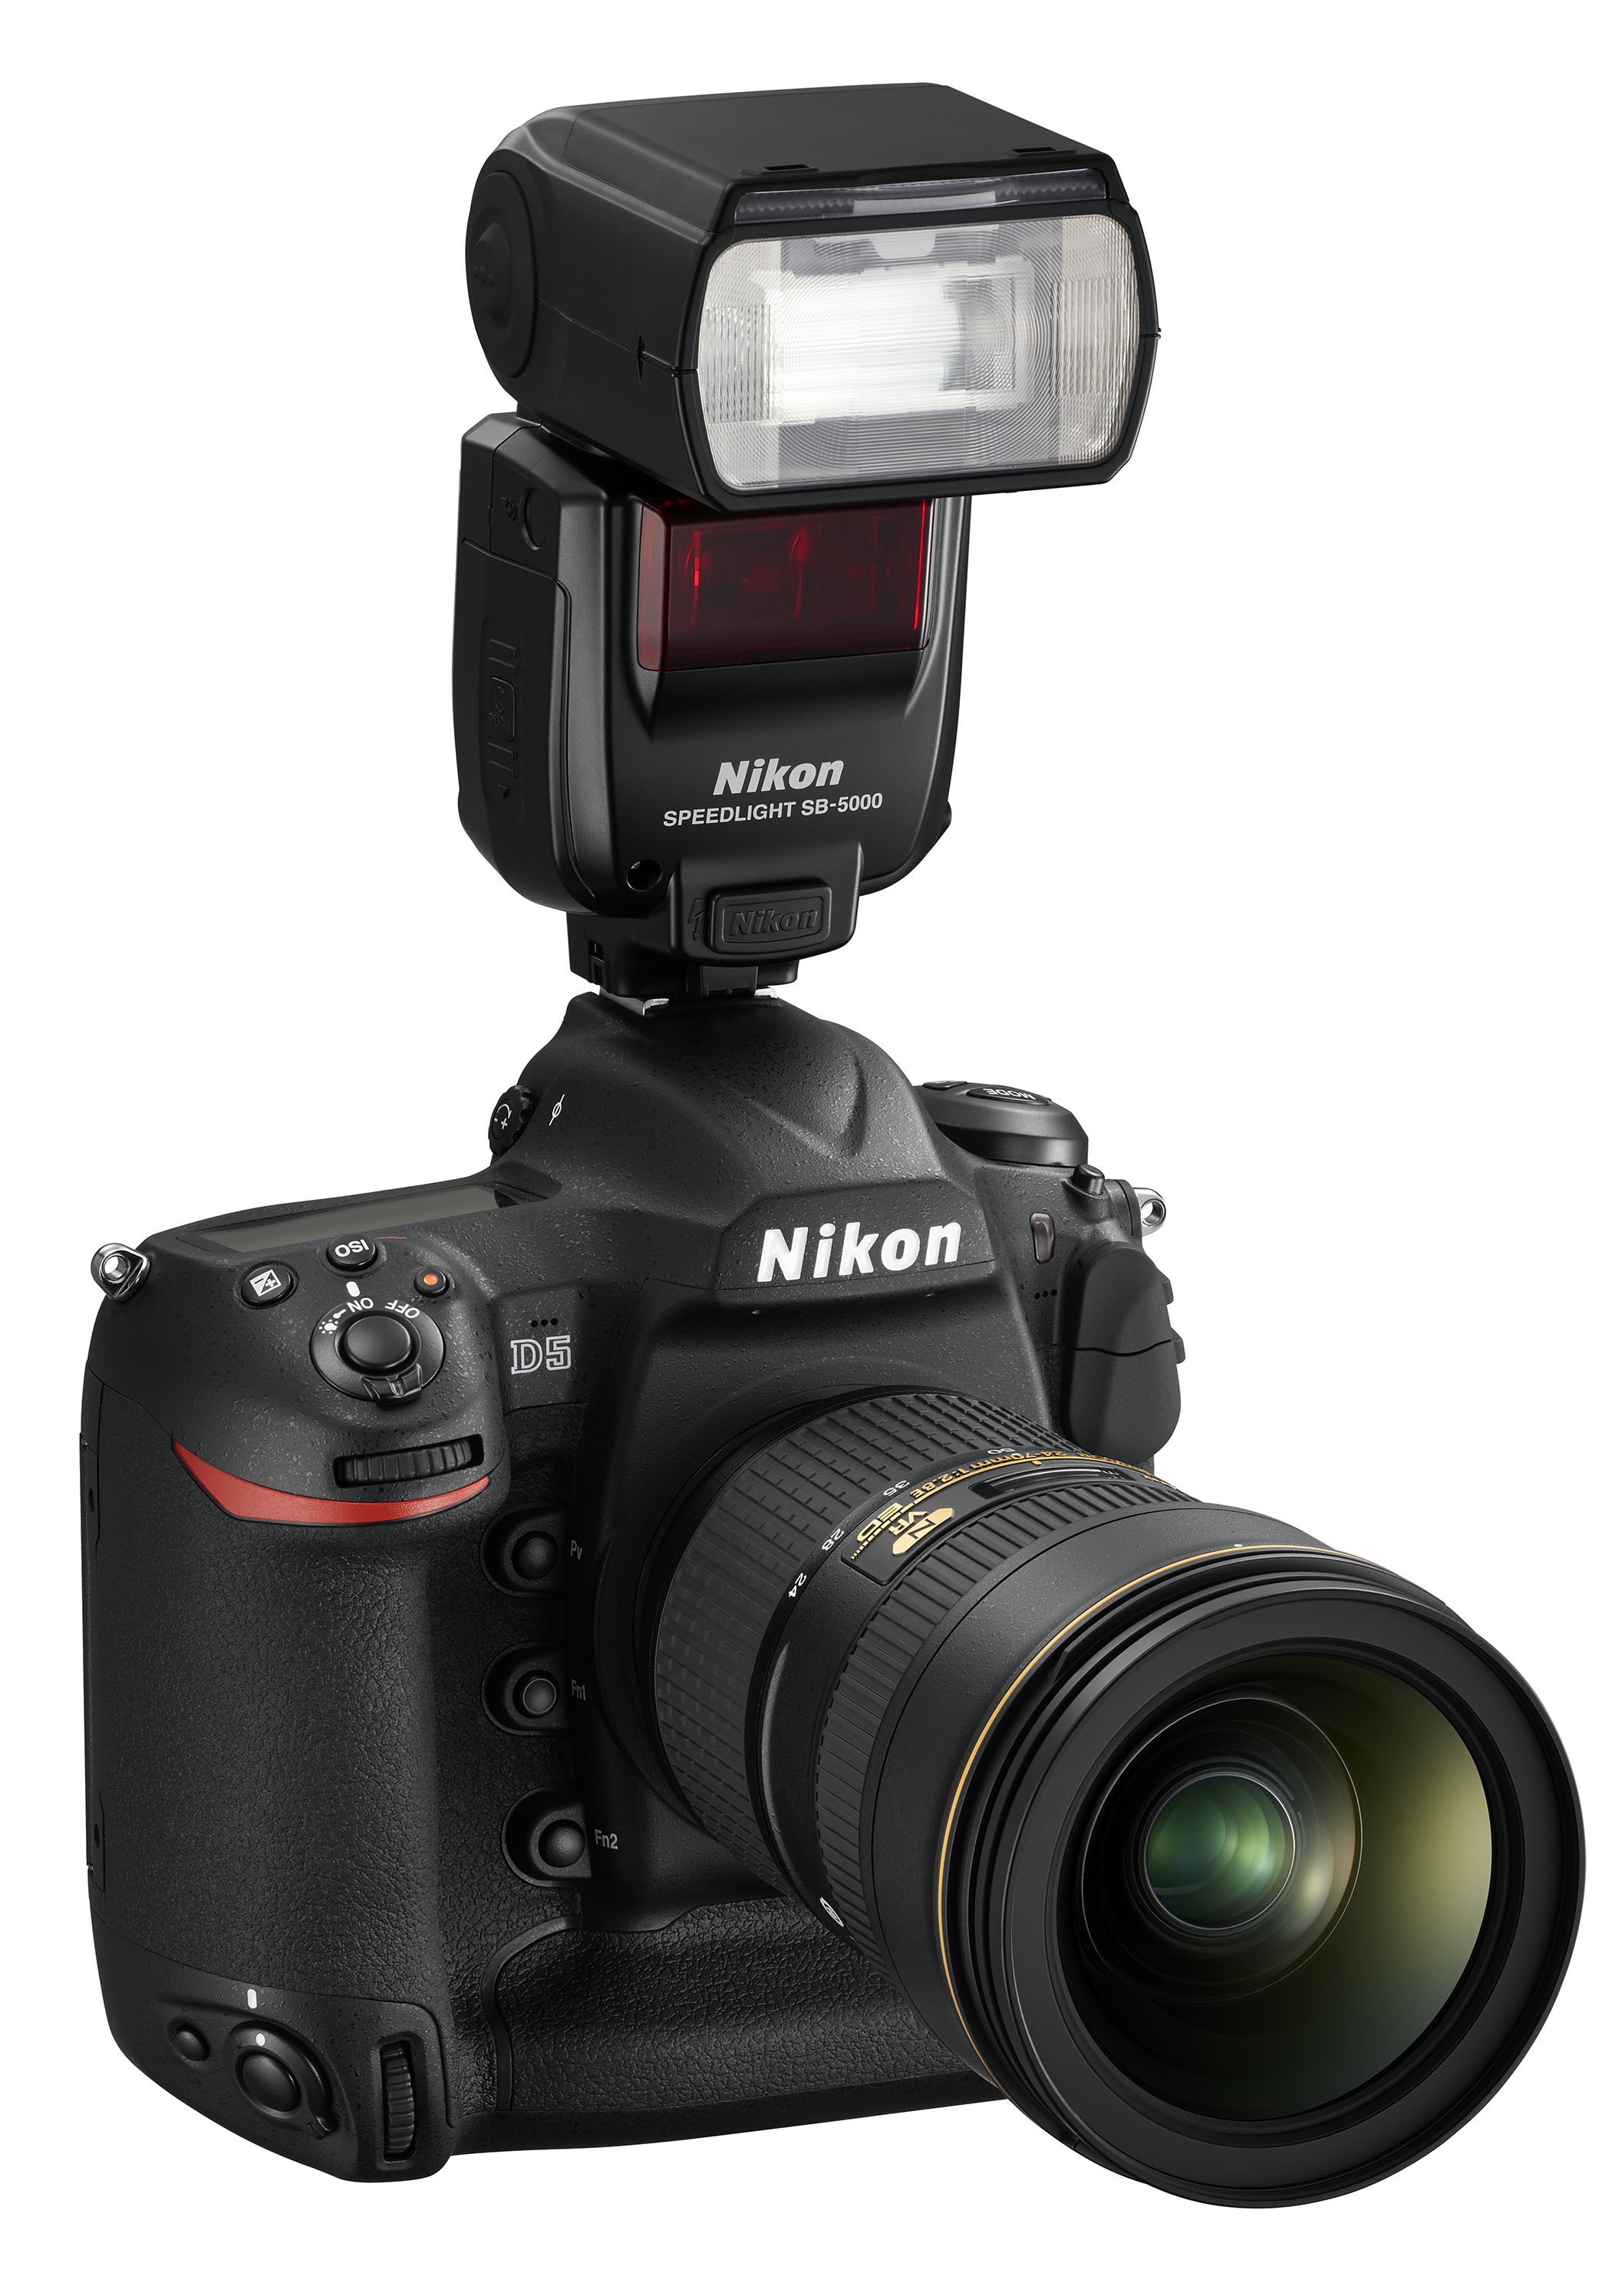 Photo gallery sb 5000 af speedlight from nikon add to collection baditri Images